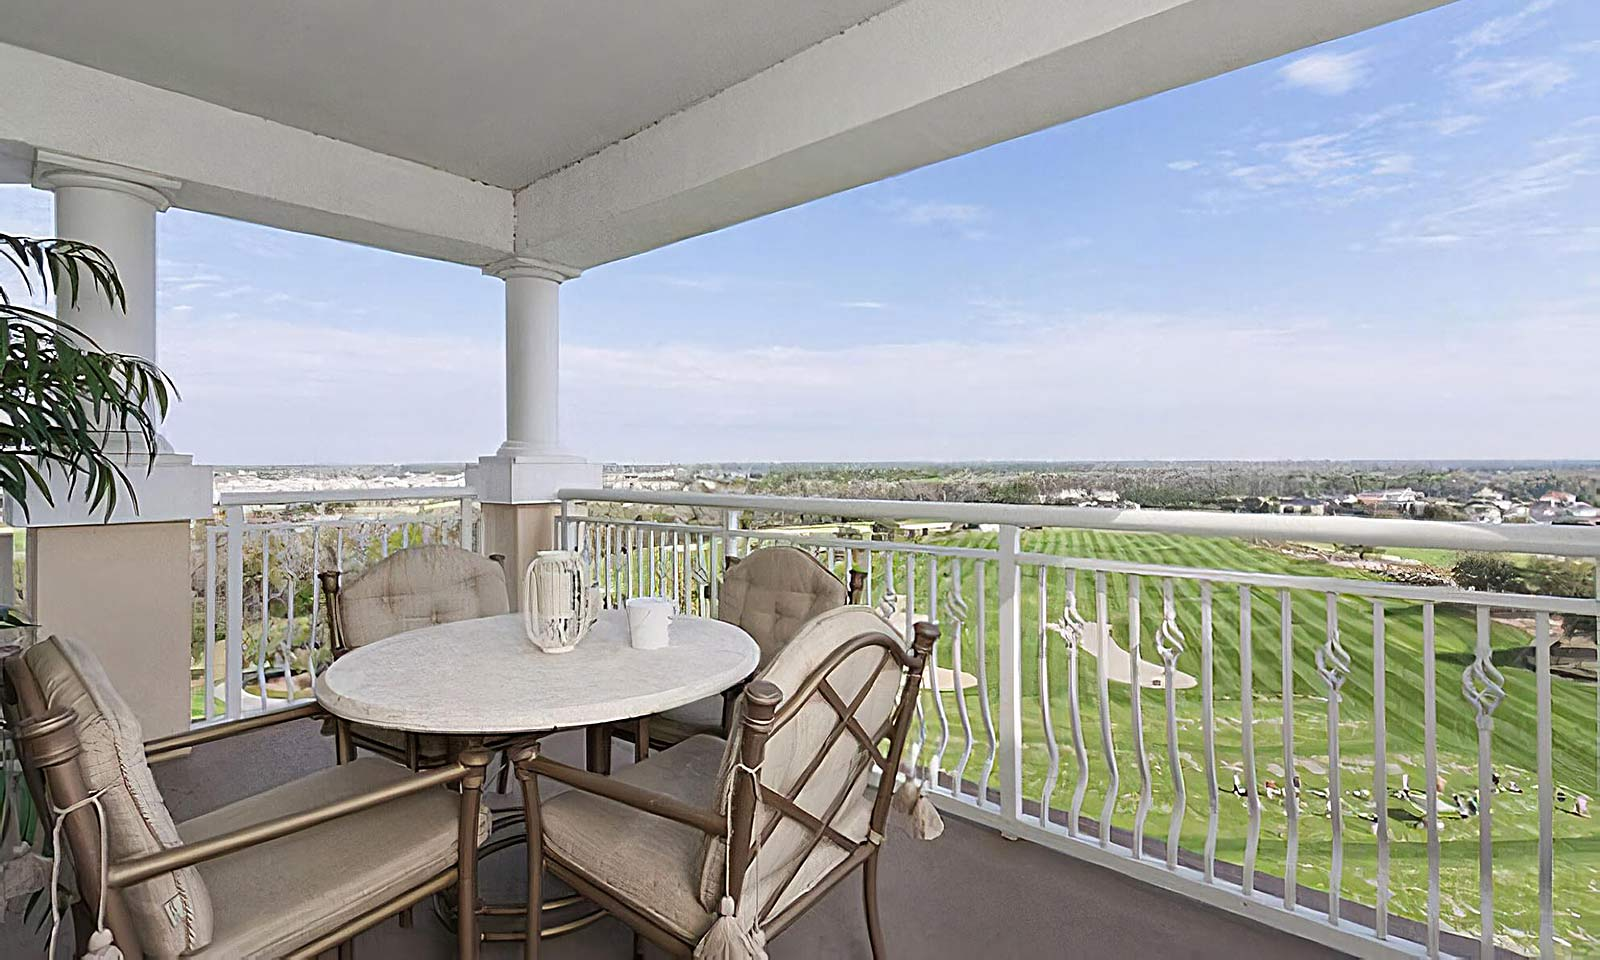 [amenities:Balcony-with-View:1] Balcony with View